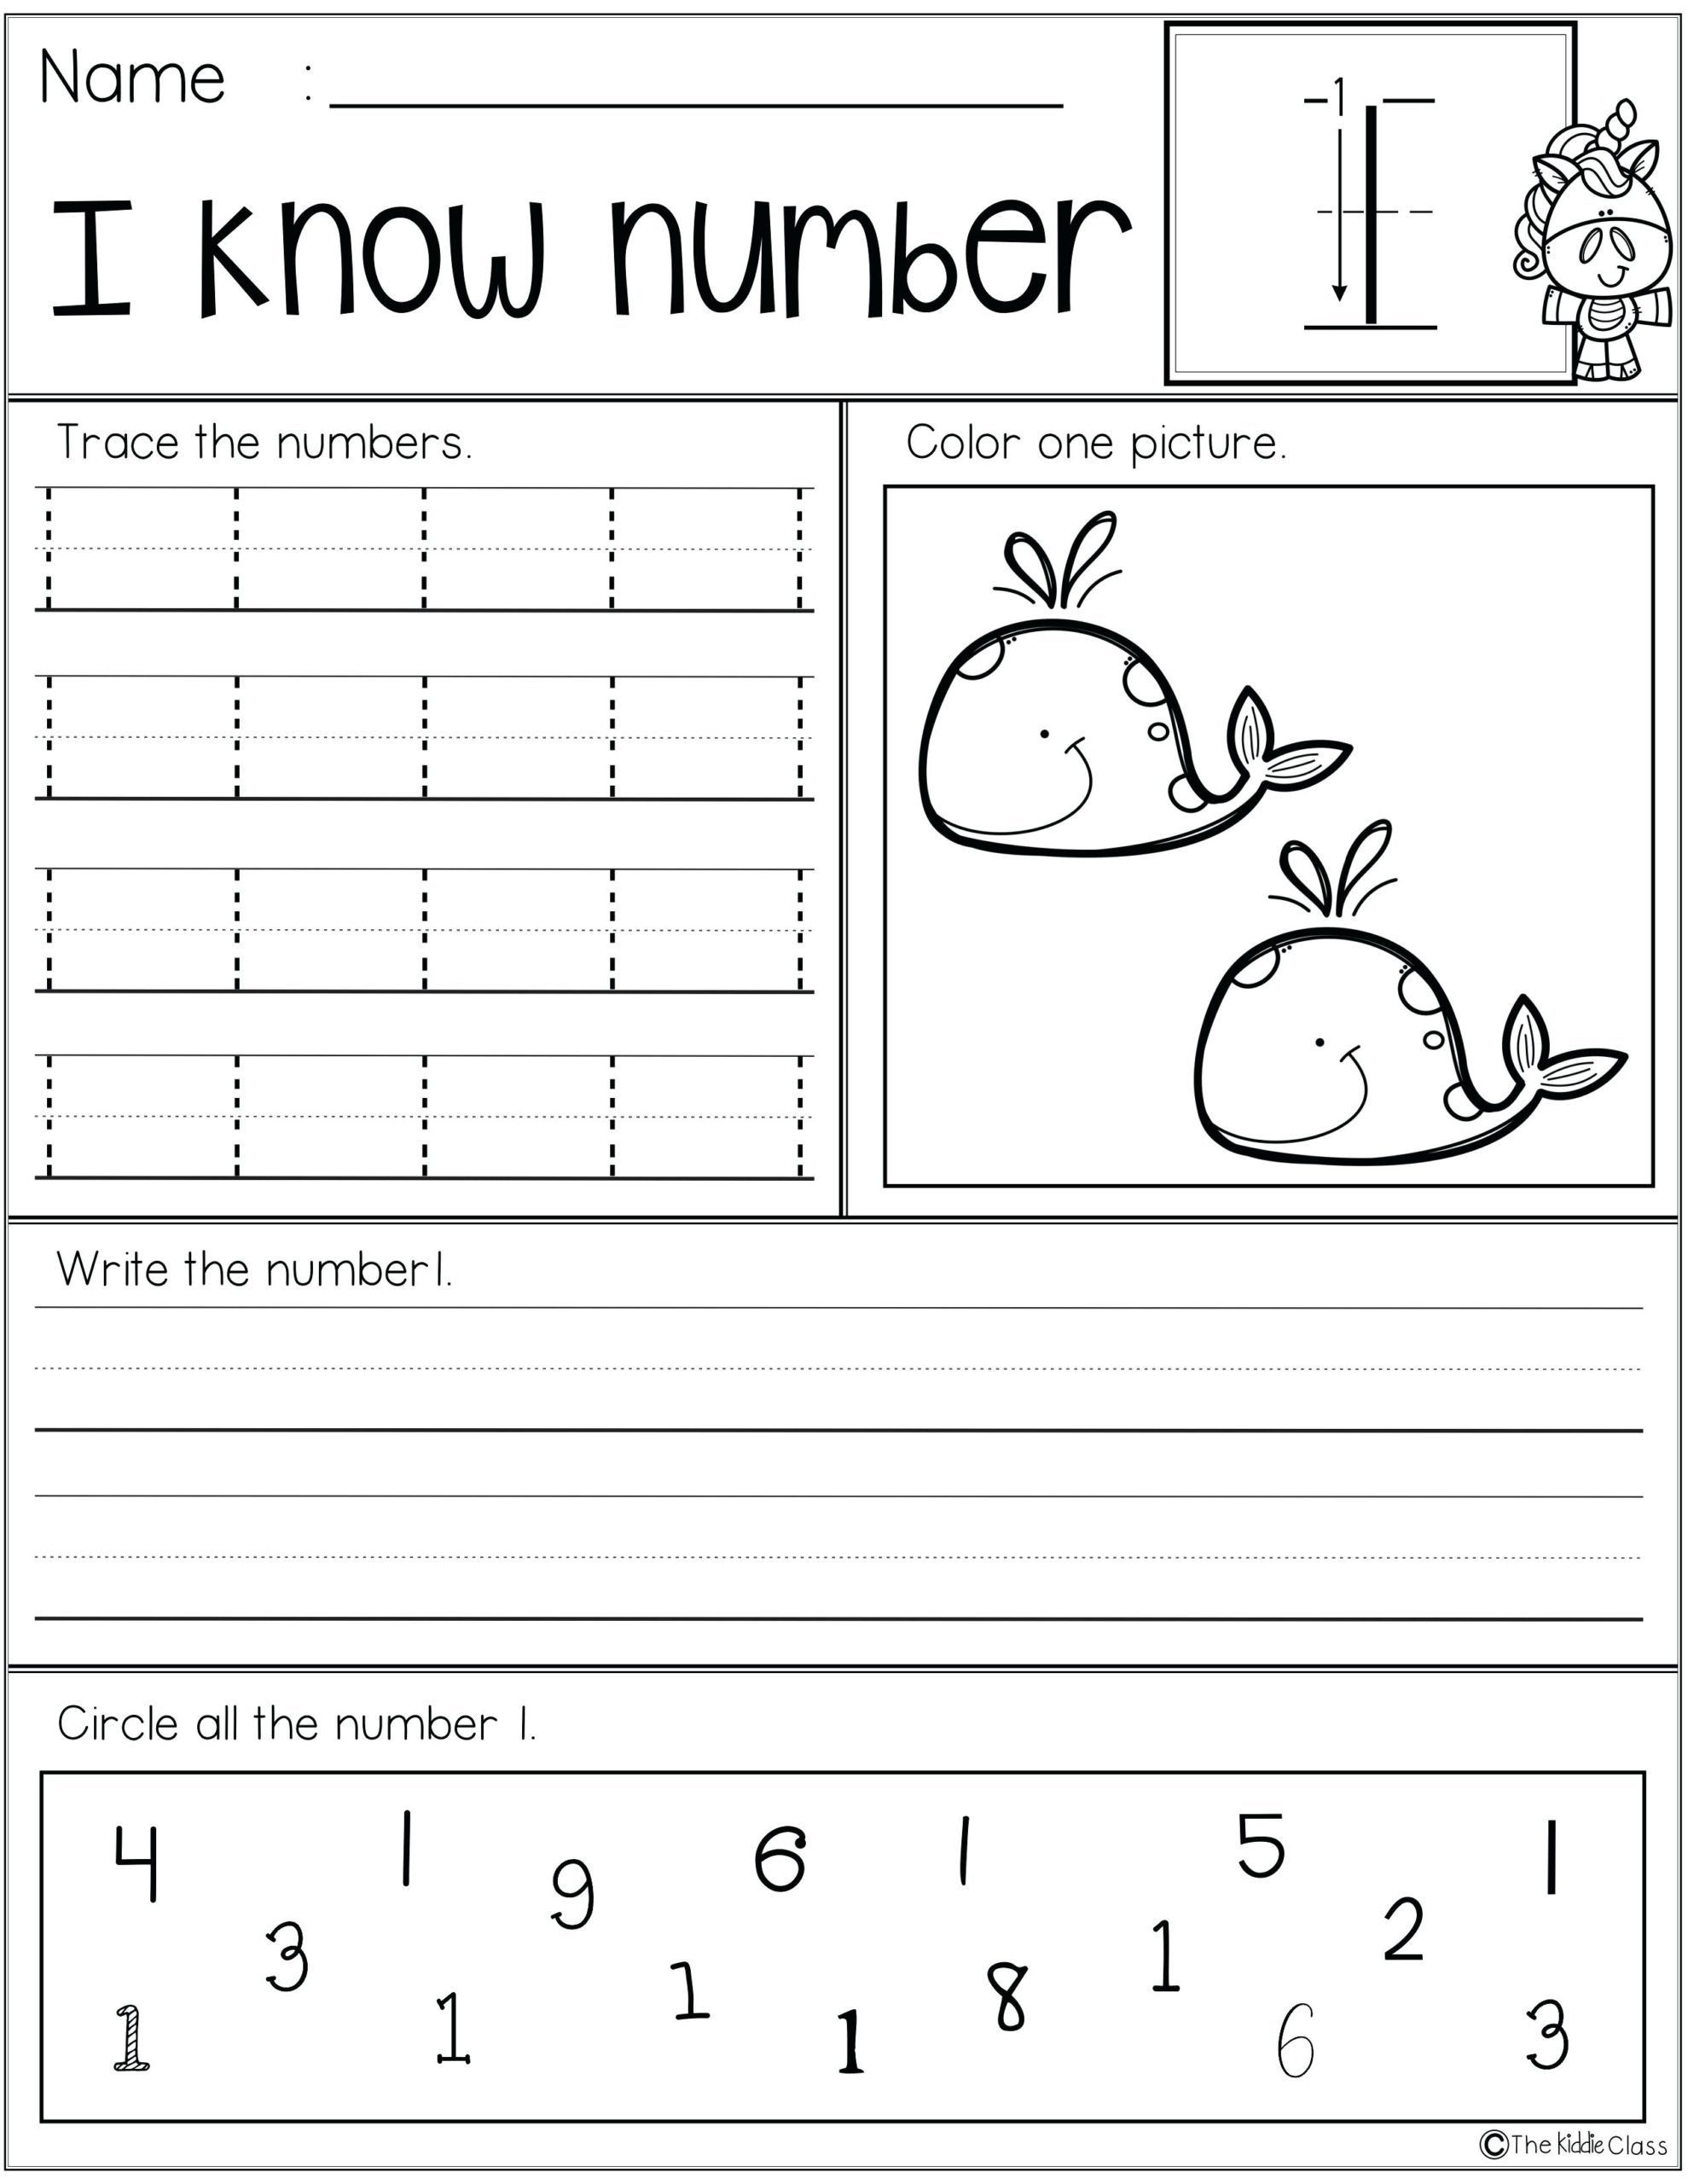 5th Grade Phonics Worksheets Worksheet Cool Math Games Addition Reading Activities for